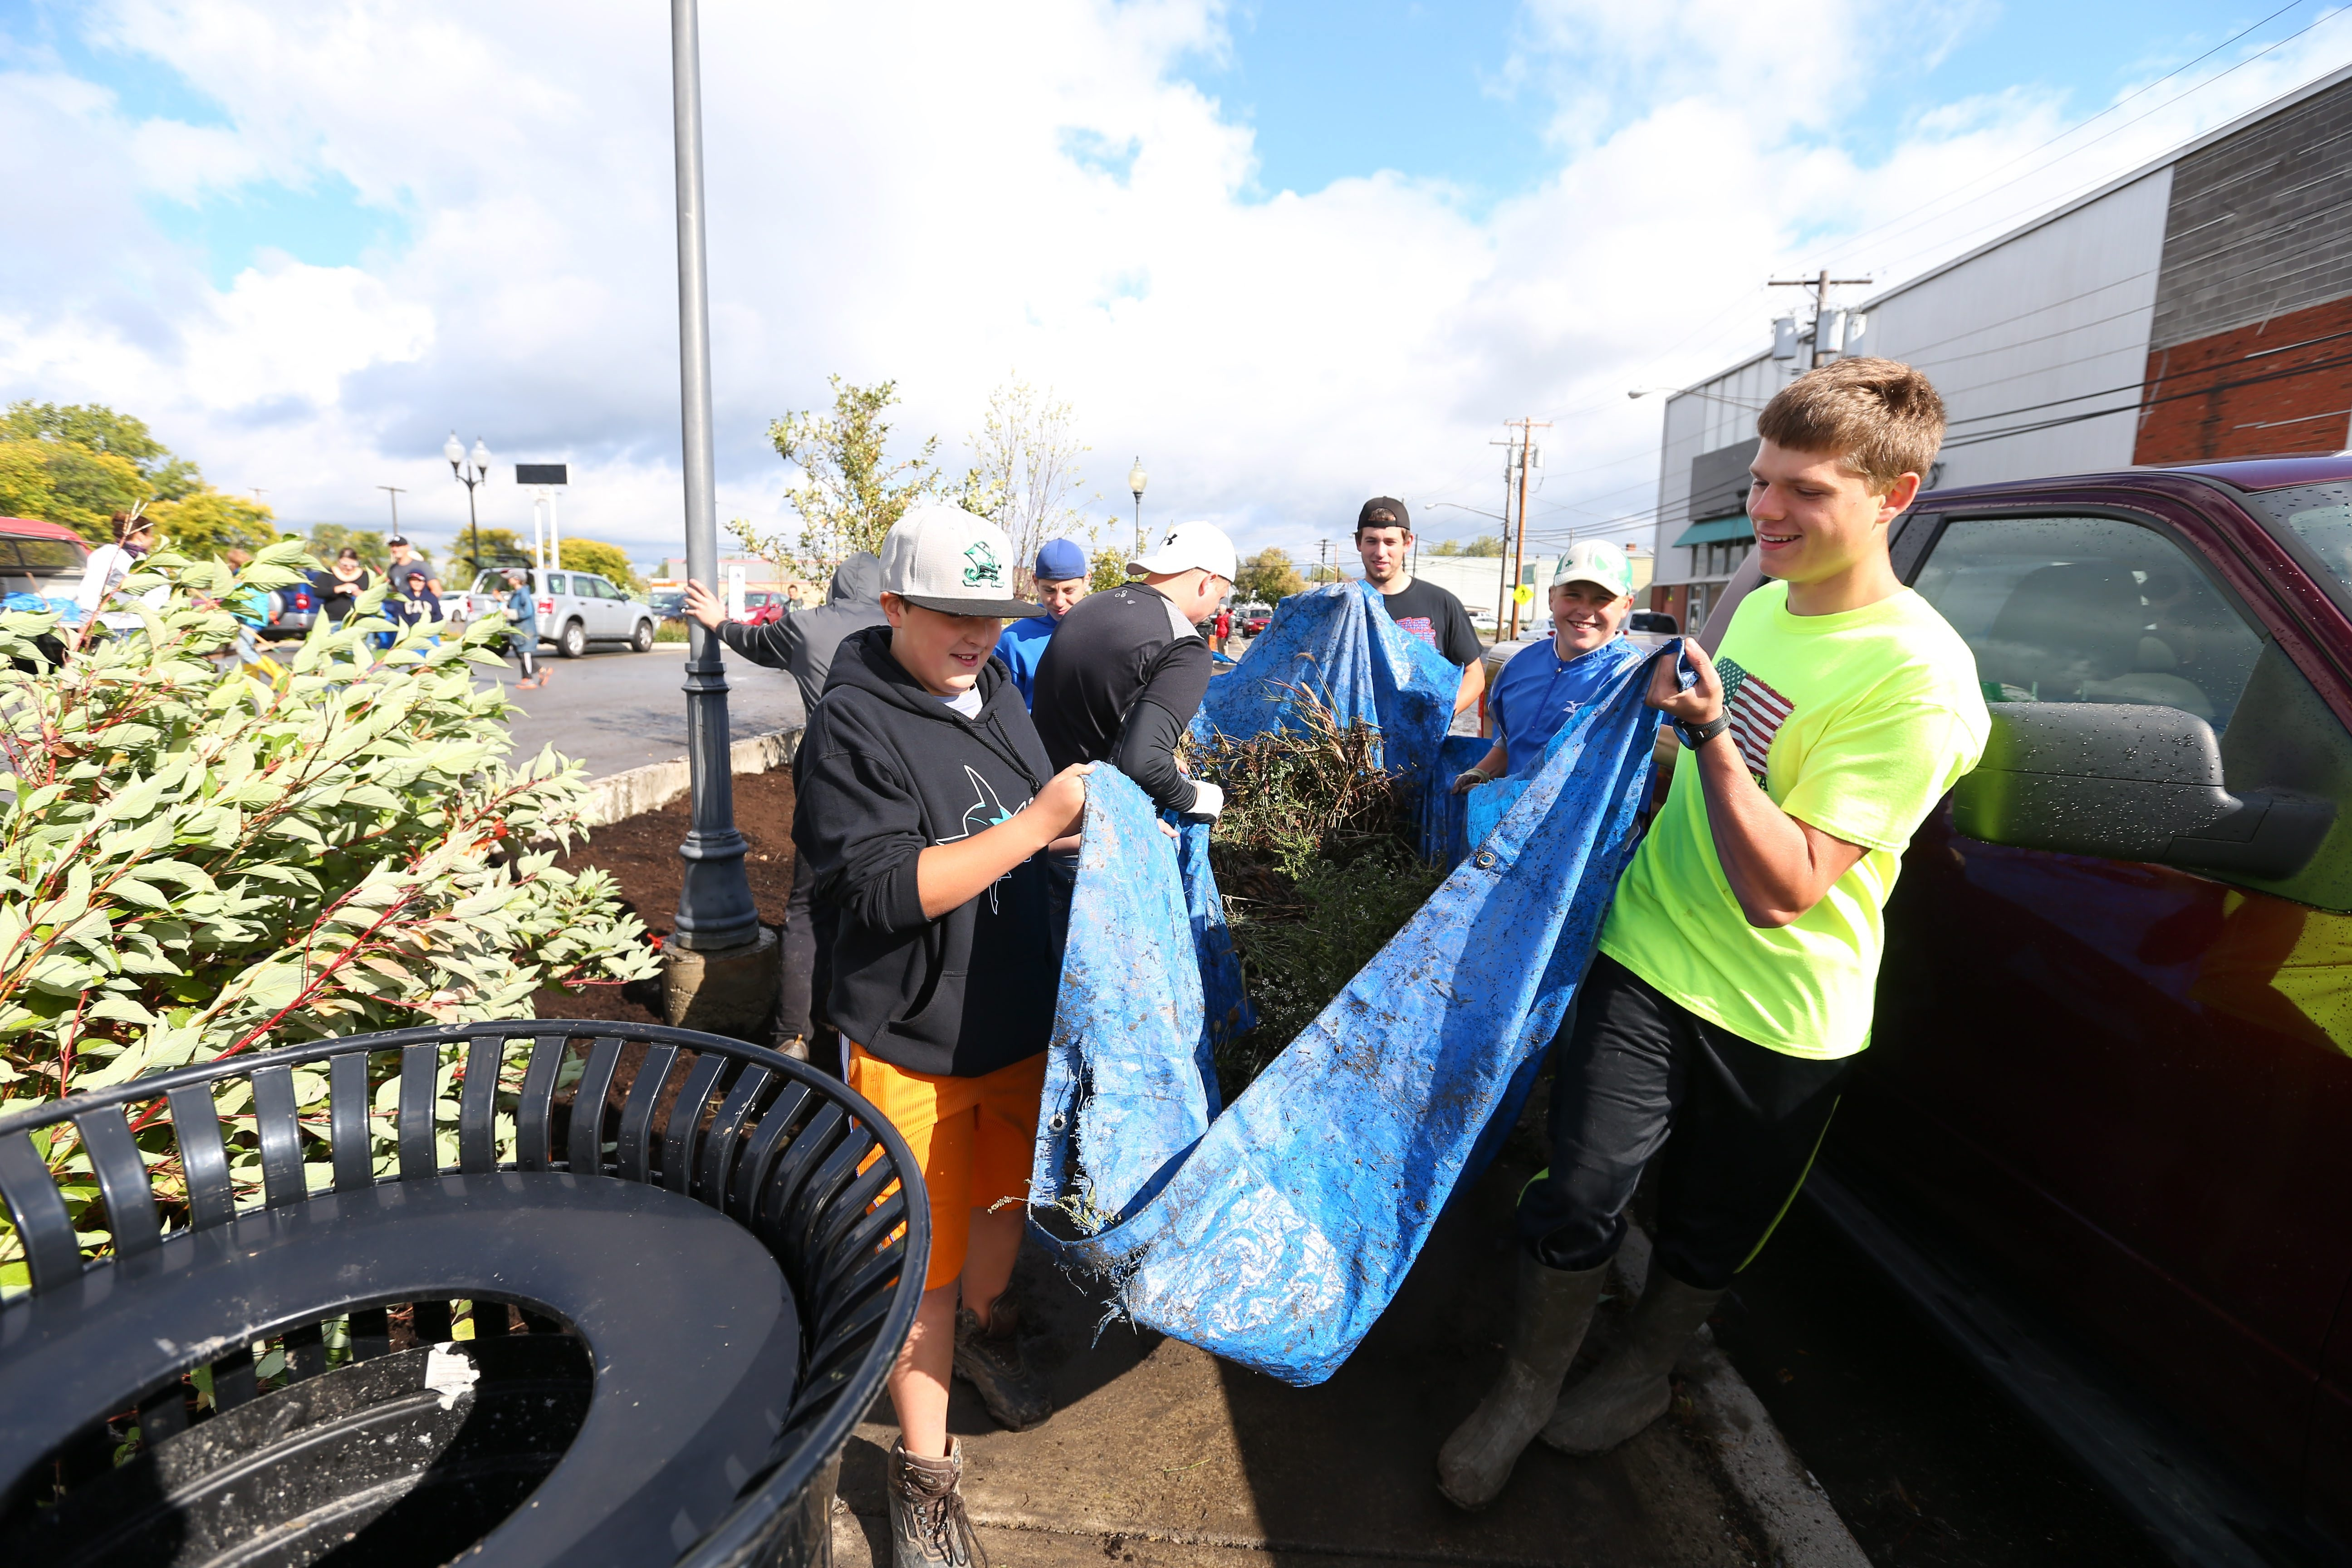 Eagle Scout candidate Nick Kaszynski, right, and friends carry a tarp full of weeds they pulled from flower beds at the Manhattan Street municipal parking lot Saturday in North Tonawanda.